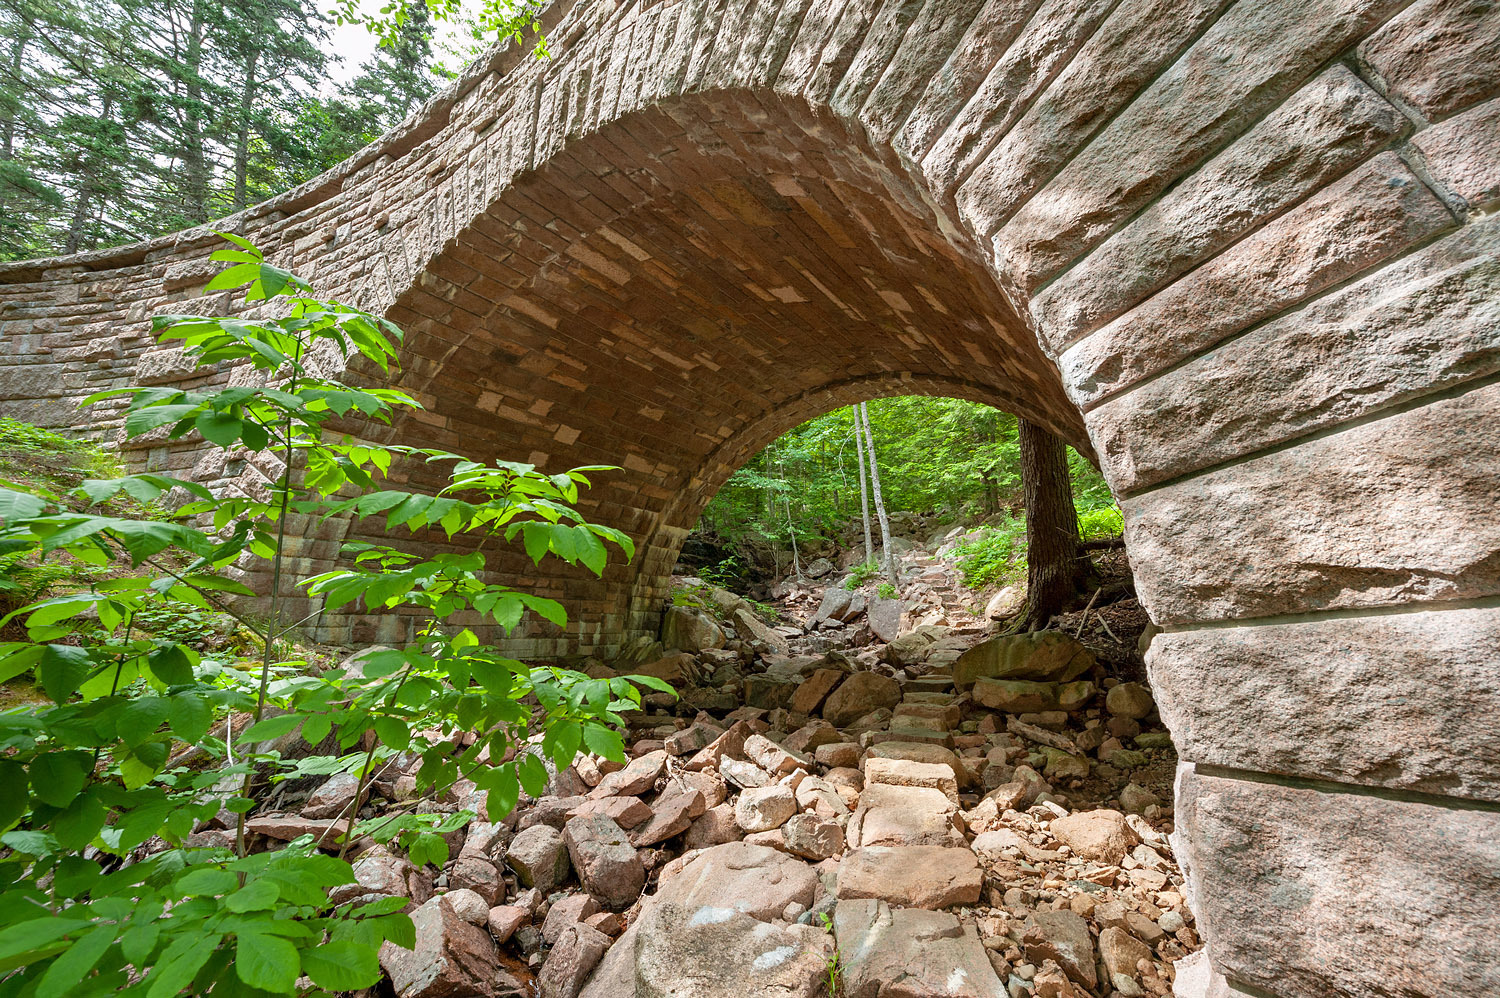 Amphitheater Bridge no. 1 - Amphitheater Trail